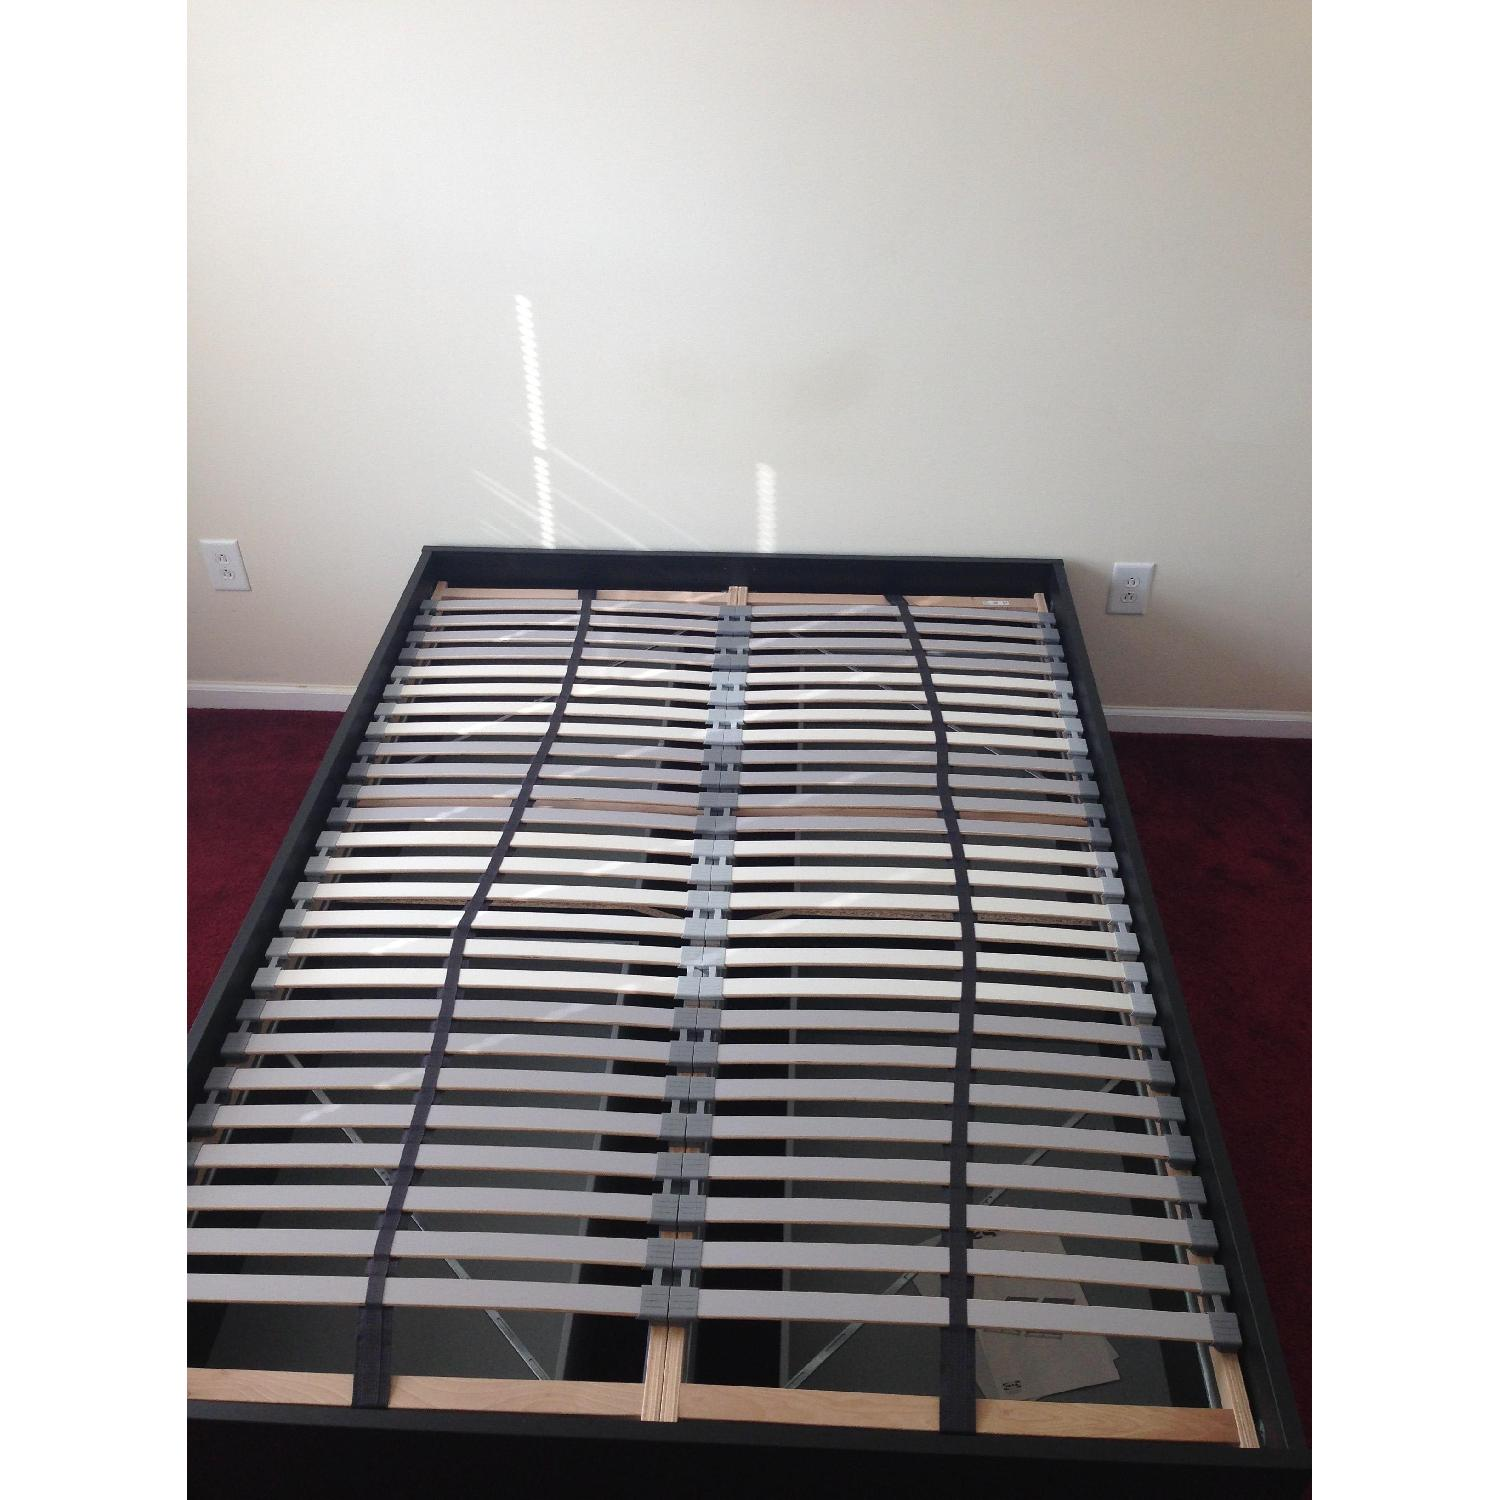 Ikea Brimnes Captains Full Size Bed w/ 4 Drawers - image-2